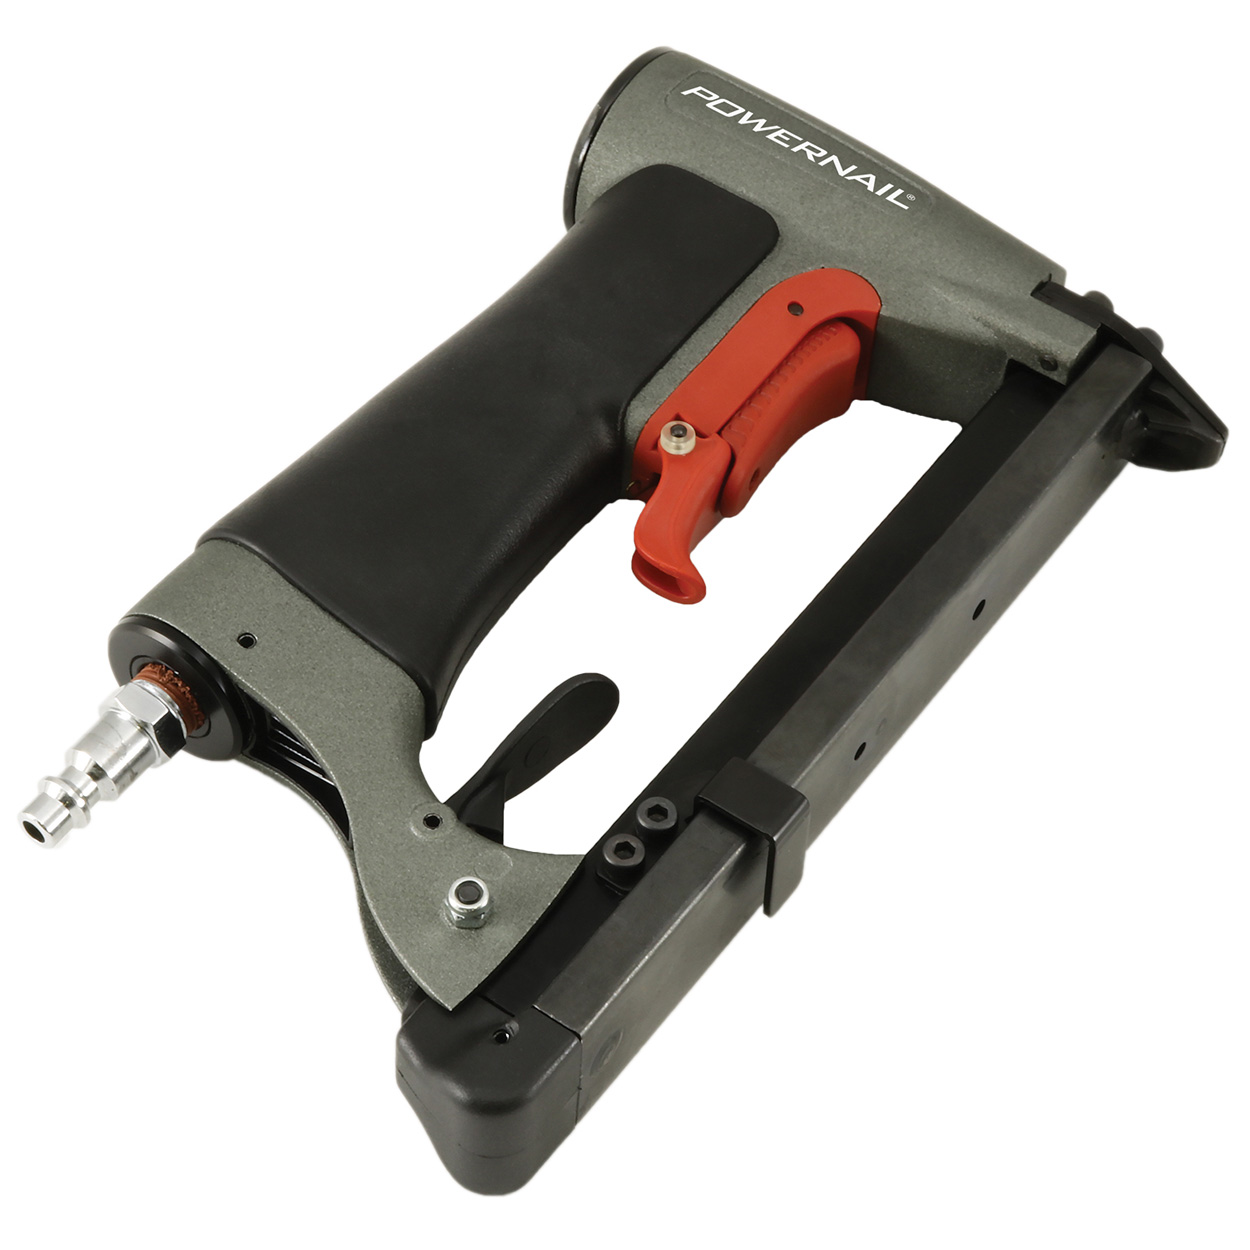 54P – Pneumatic Carpet Stapler